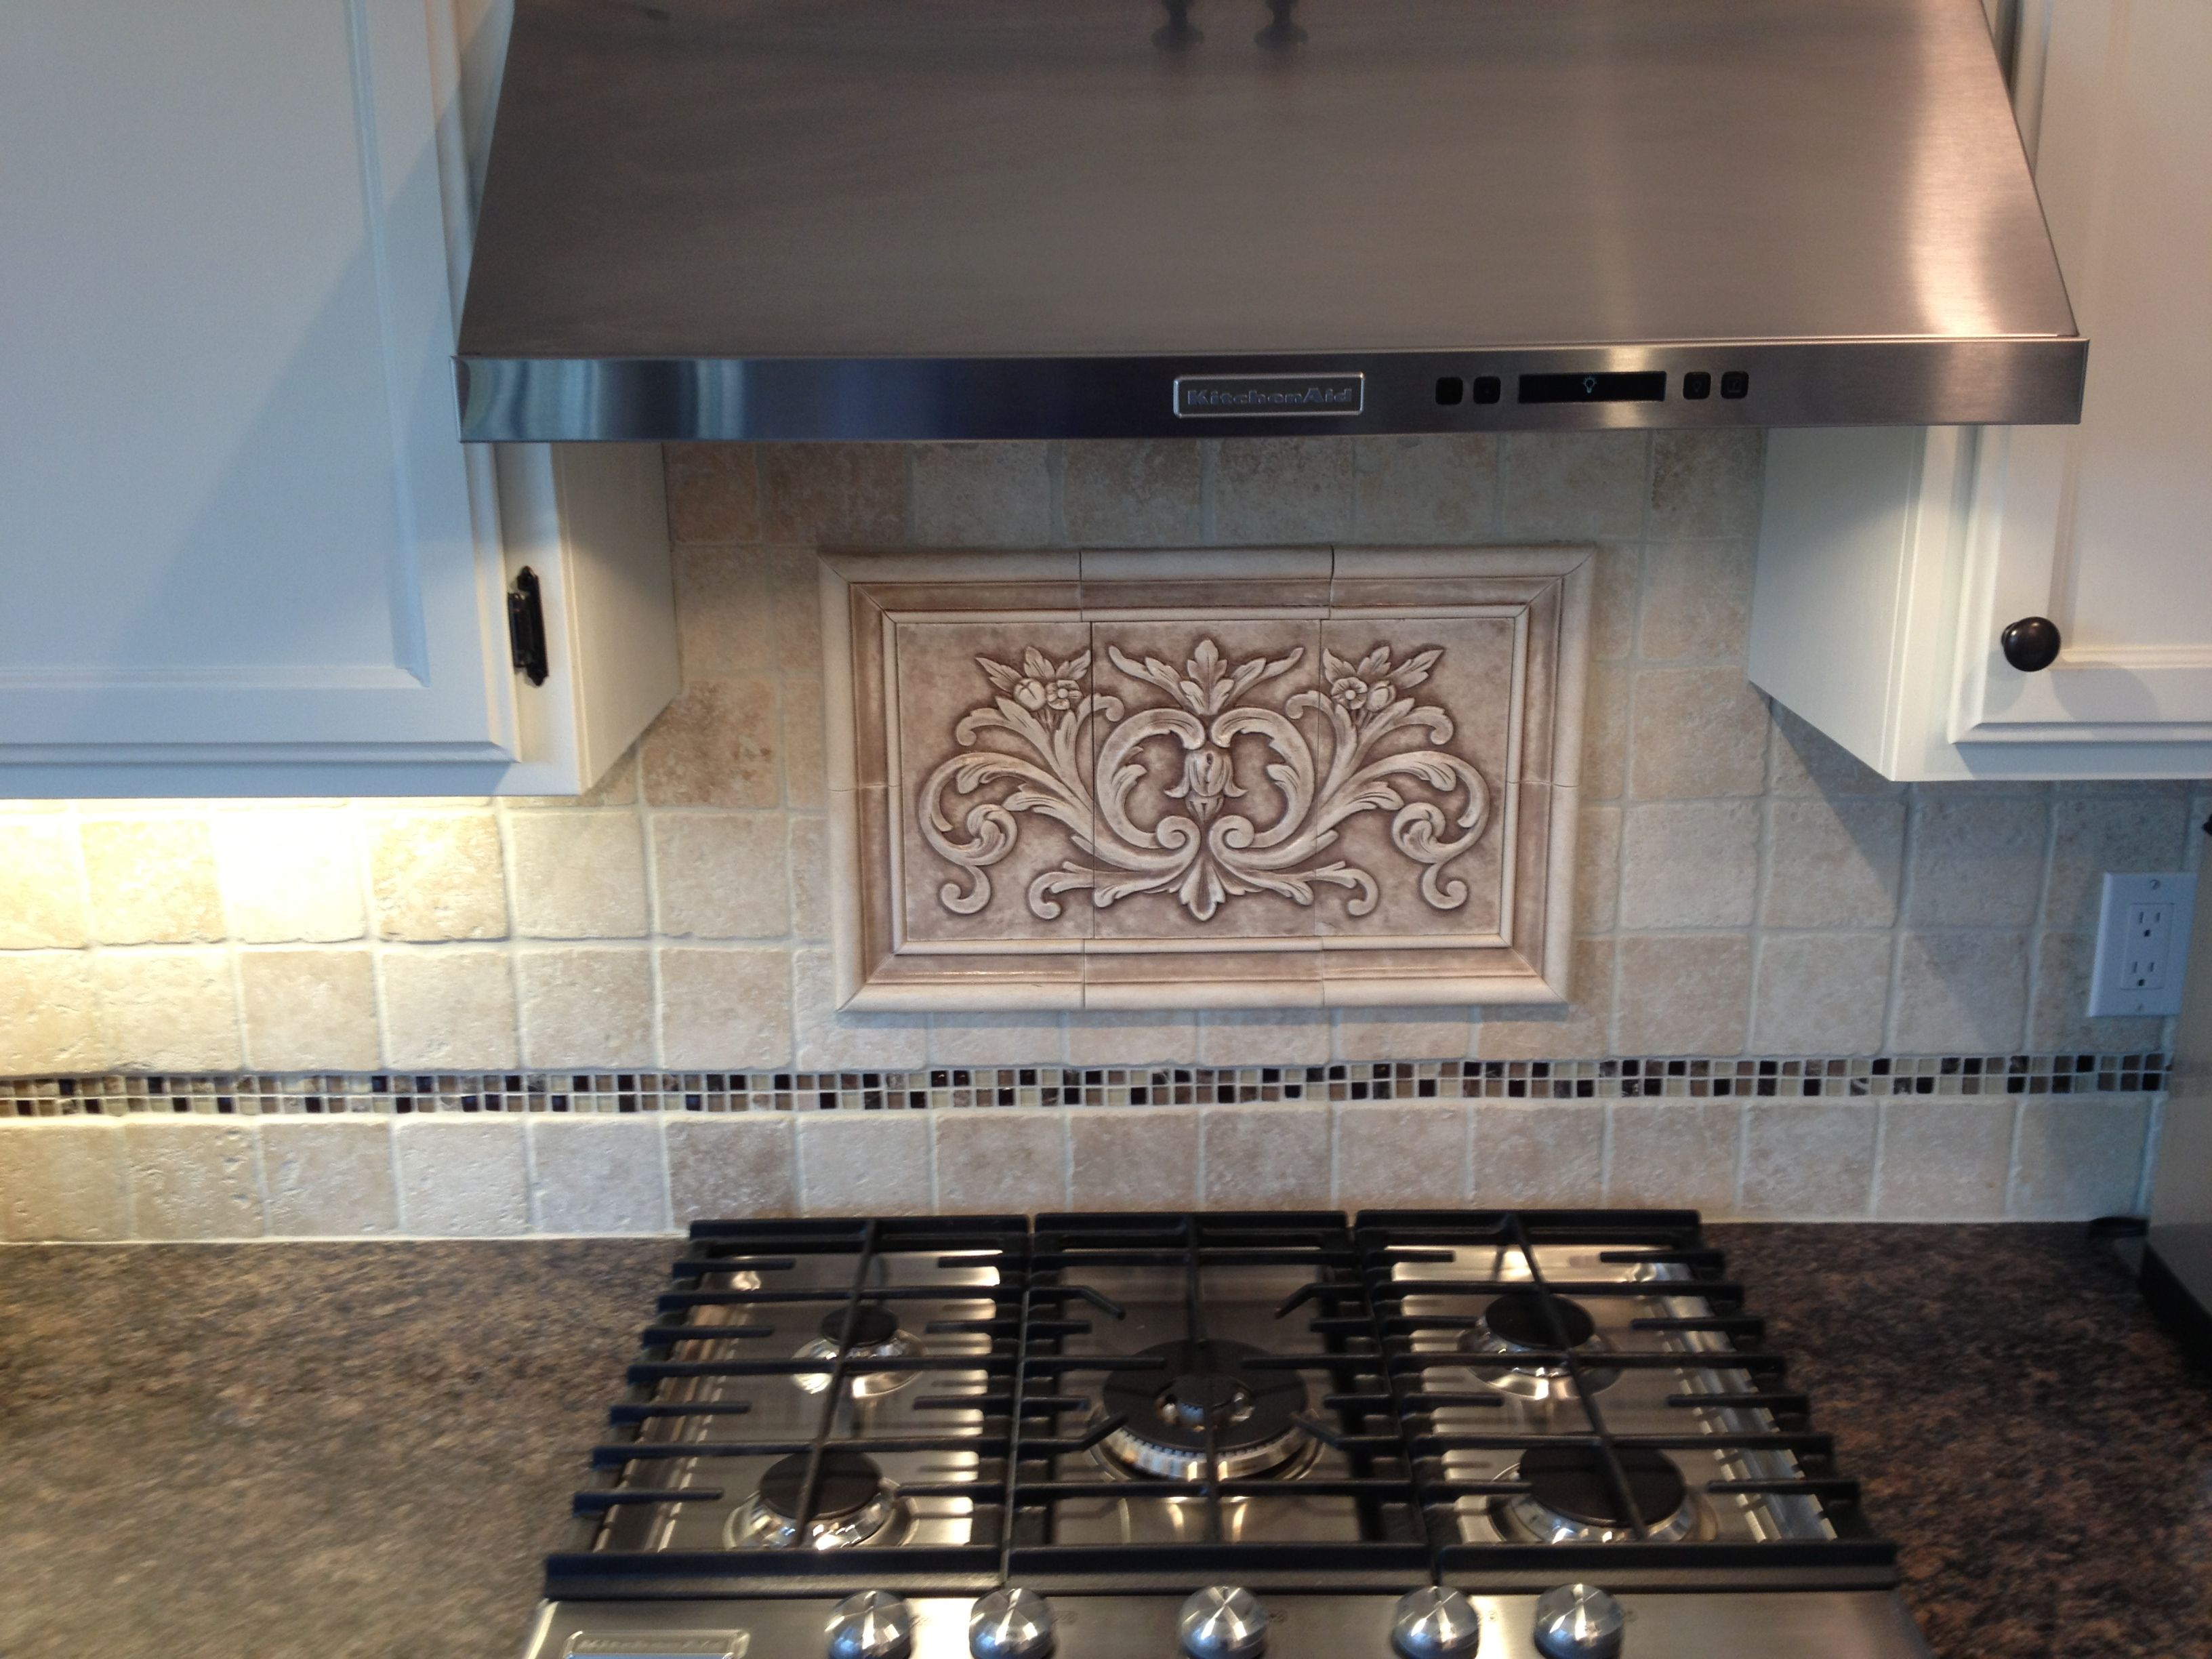 Charming Charming Decorative Tile Backsplash Kitchen Backsplash